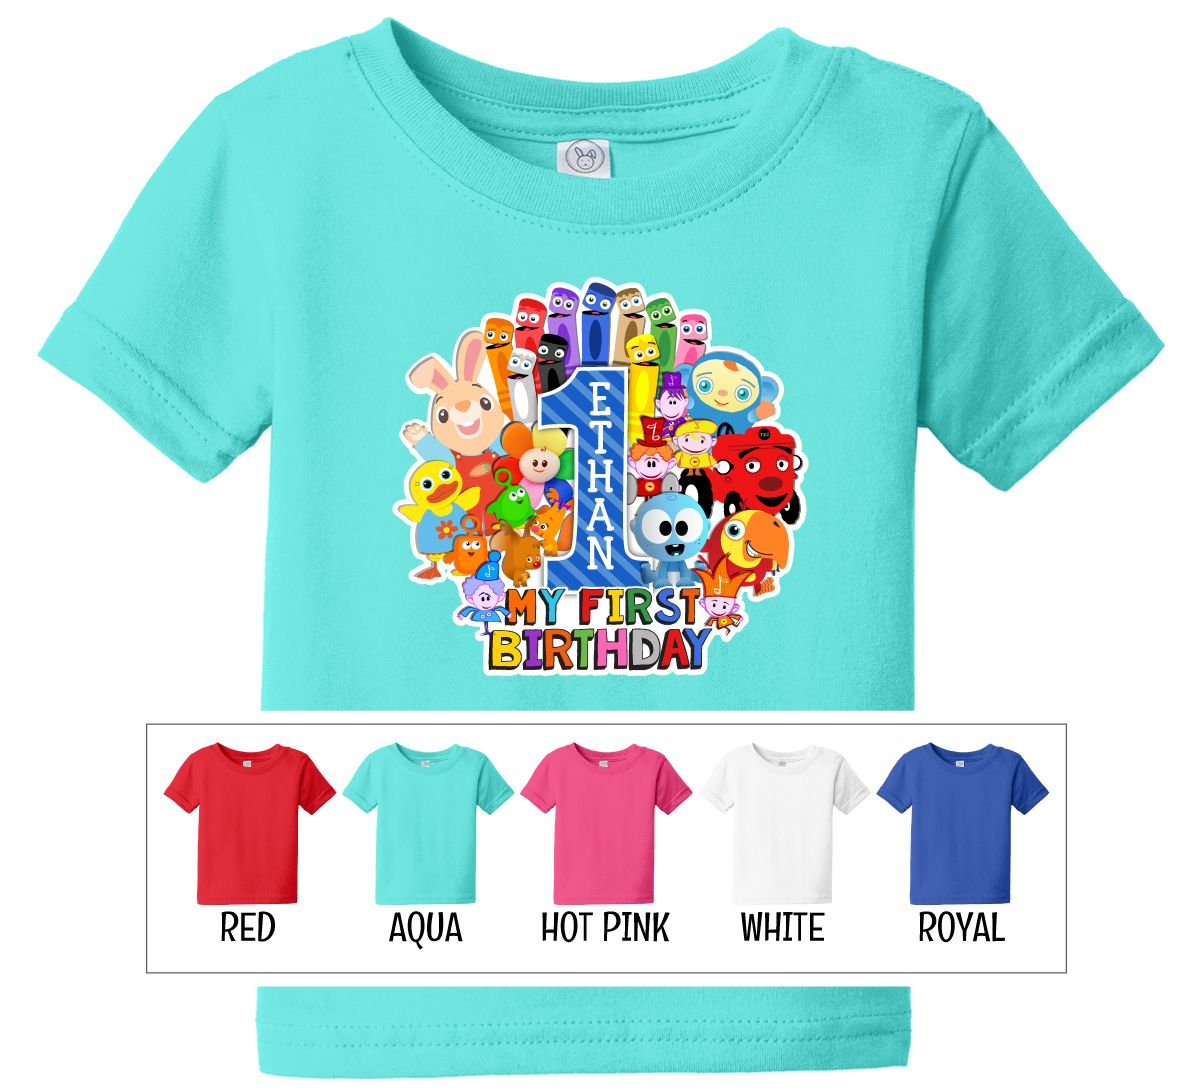 BabyFirst TV Favorites Personalized Birthday Shirt